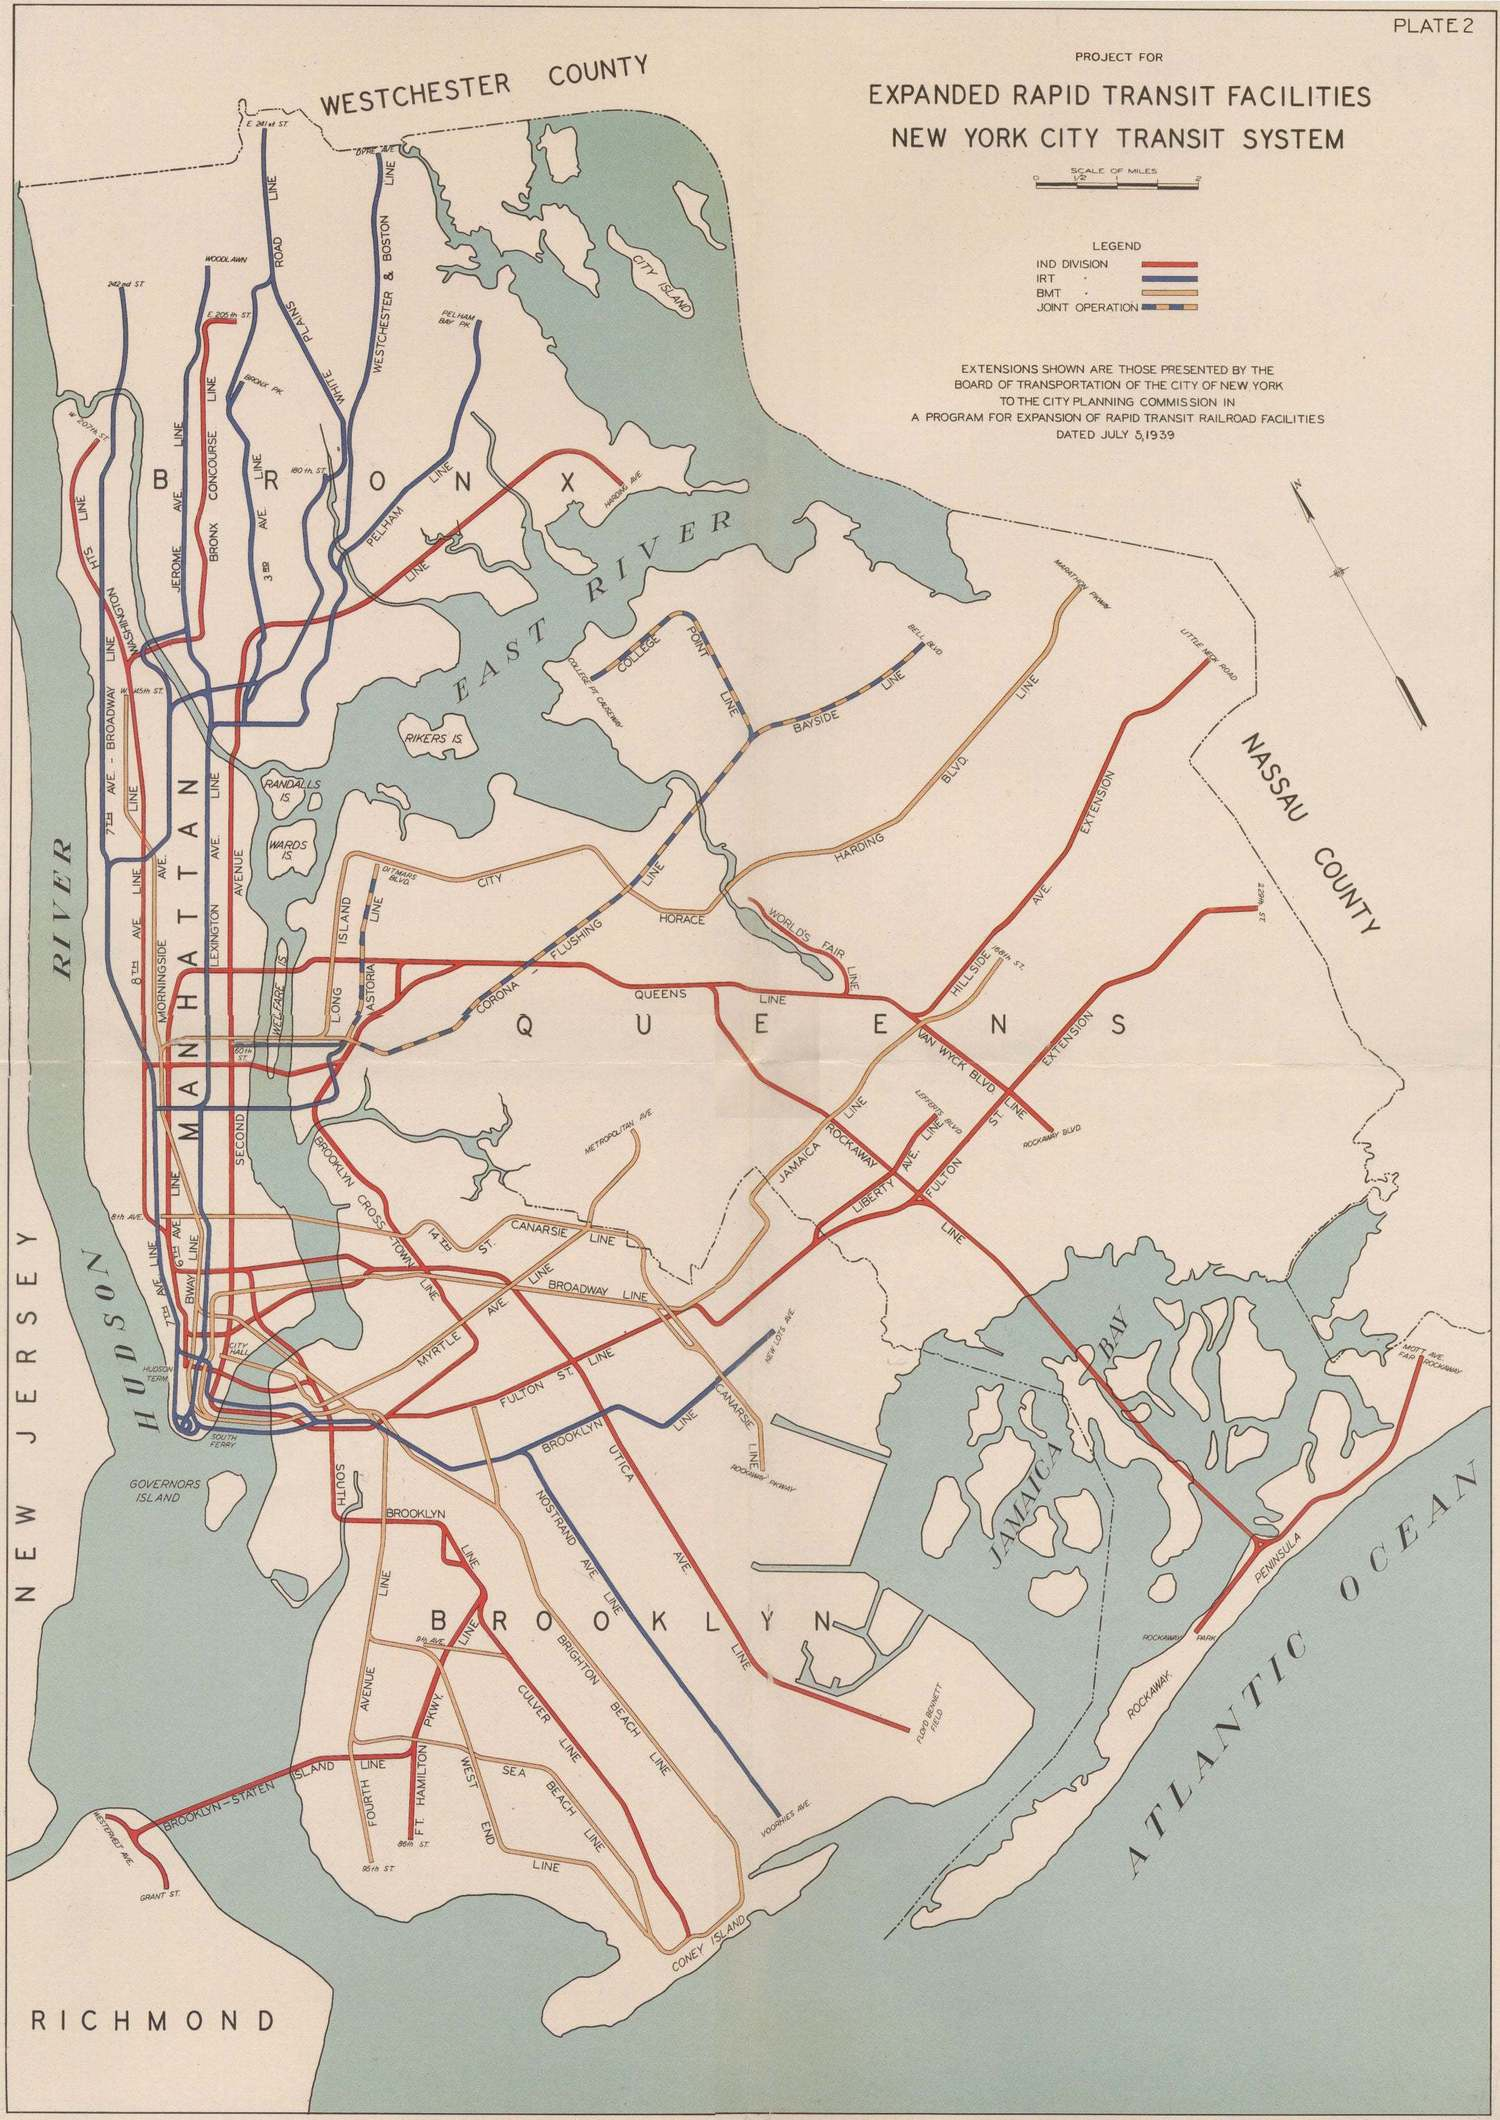 Extended Rapid Transit Facilities, New York City Transit System, 1939